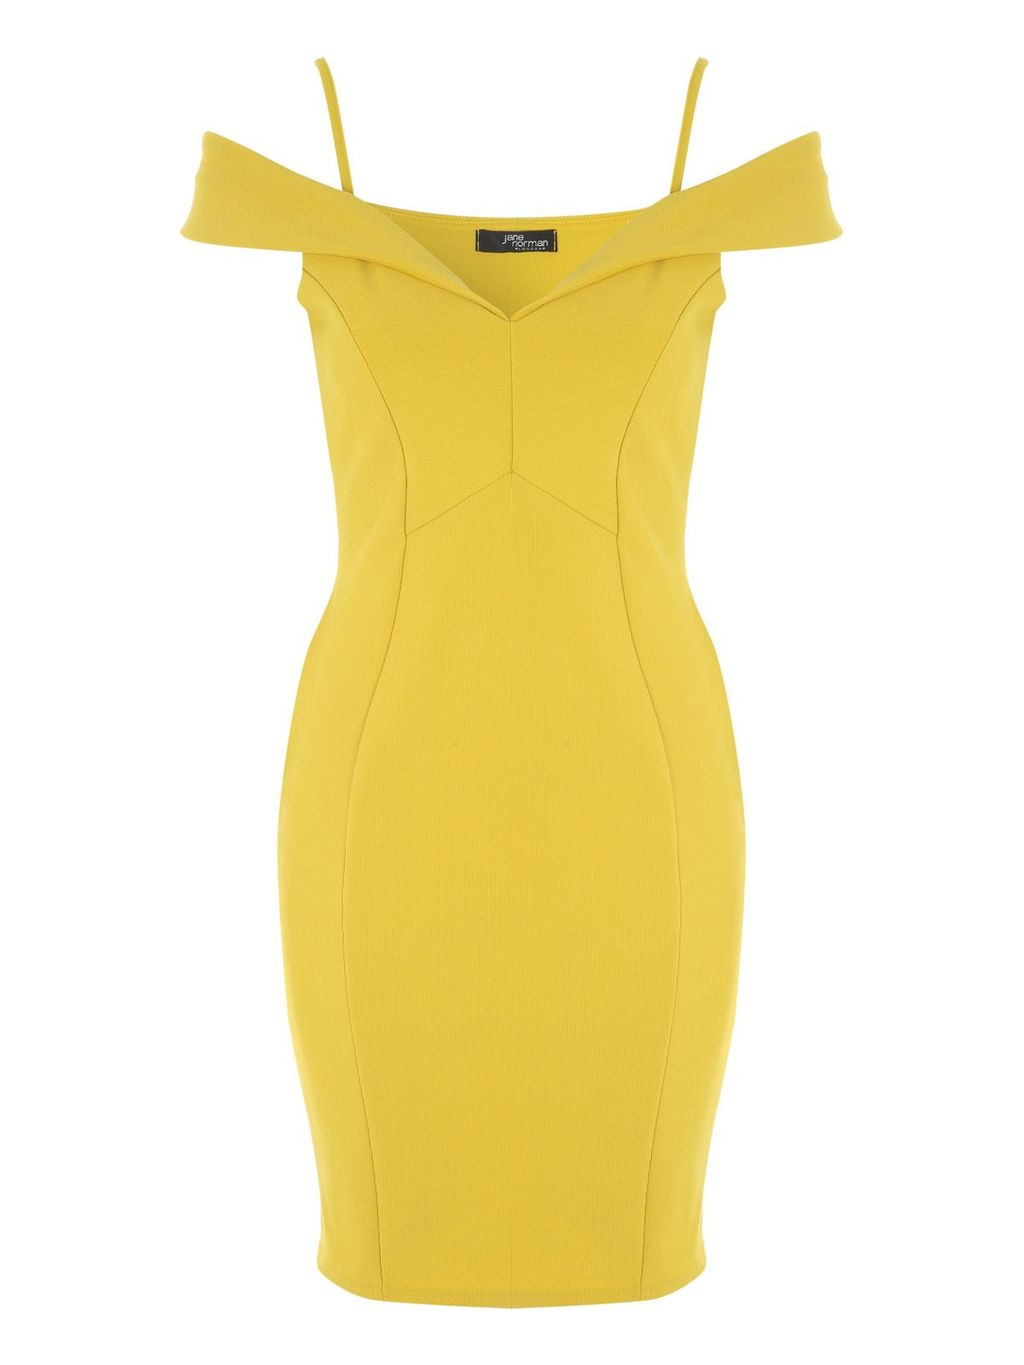 Bardot Midi Dress, Yellow - neckline: off the shoulder; sleeve style: capped; fit: tight; pattern: plain; style: bodycon; predominant colour: yellow; occasions: evening; length: just above the knee; fibres: polyester/polyamide - stretch; sleeve length: short sleeve; texture group: jersey - clingy; pattern type: fabric; season: a/w 2016; wardrobe: event